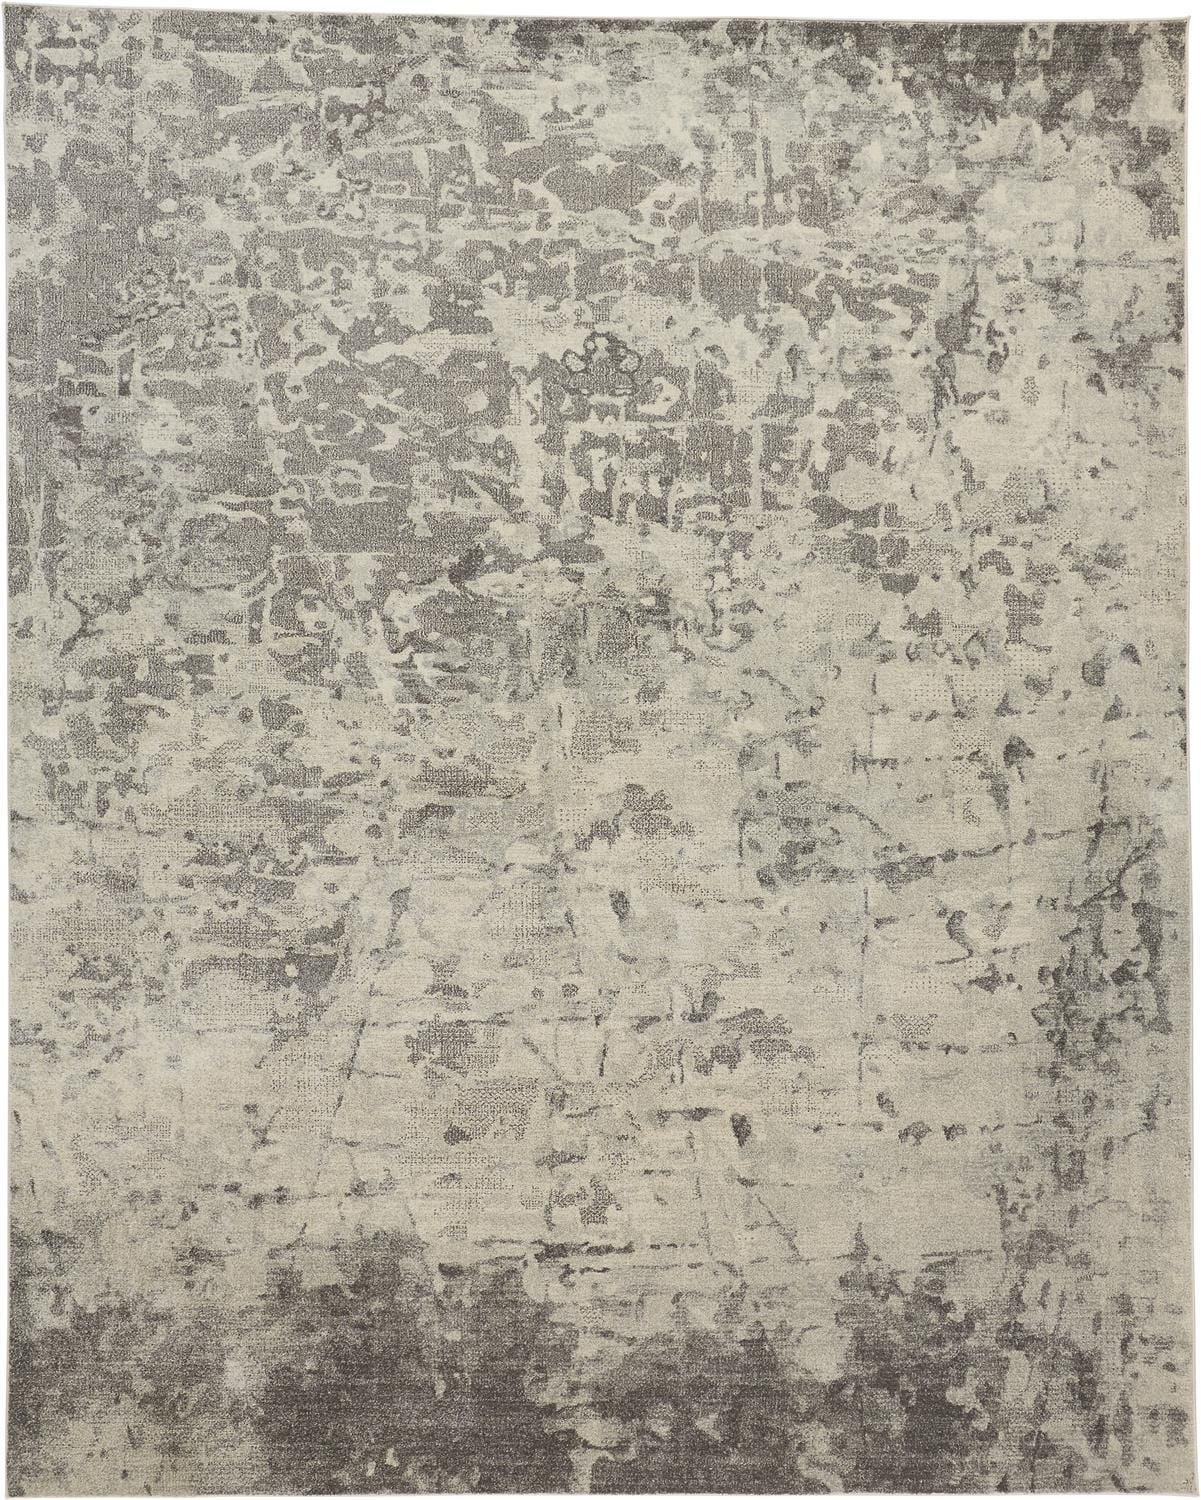 Feizy Feizy Sorel Distressed Abstract Rug - Available in 5 Sizes - Beige & Opal Gray 5' x 8' 6093276FSLVIVYE10